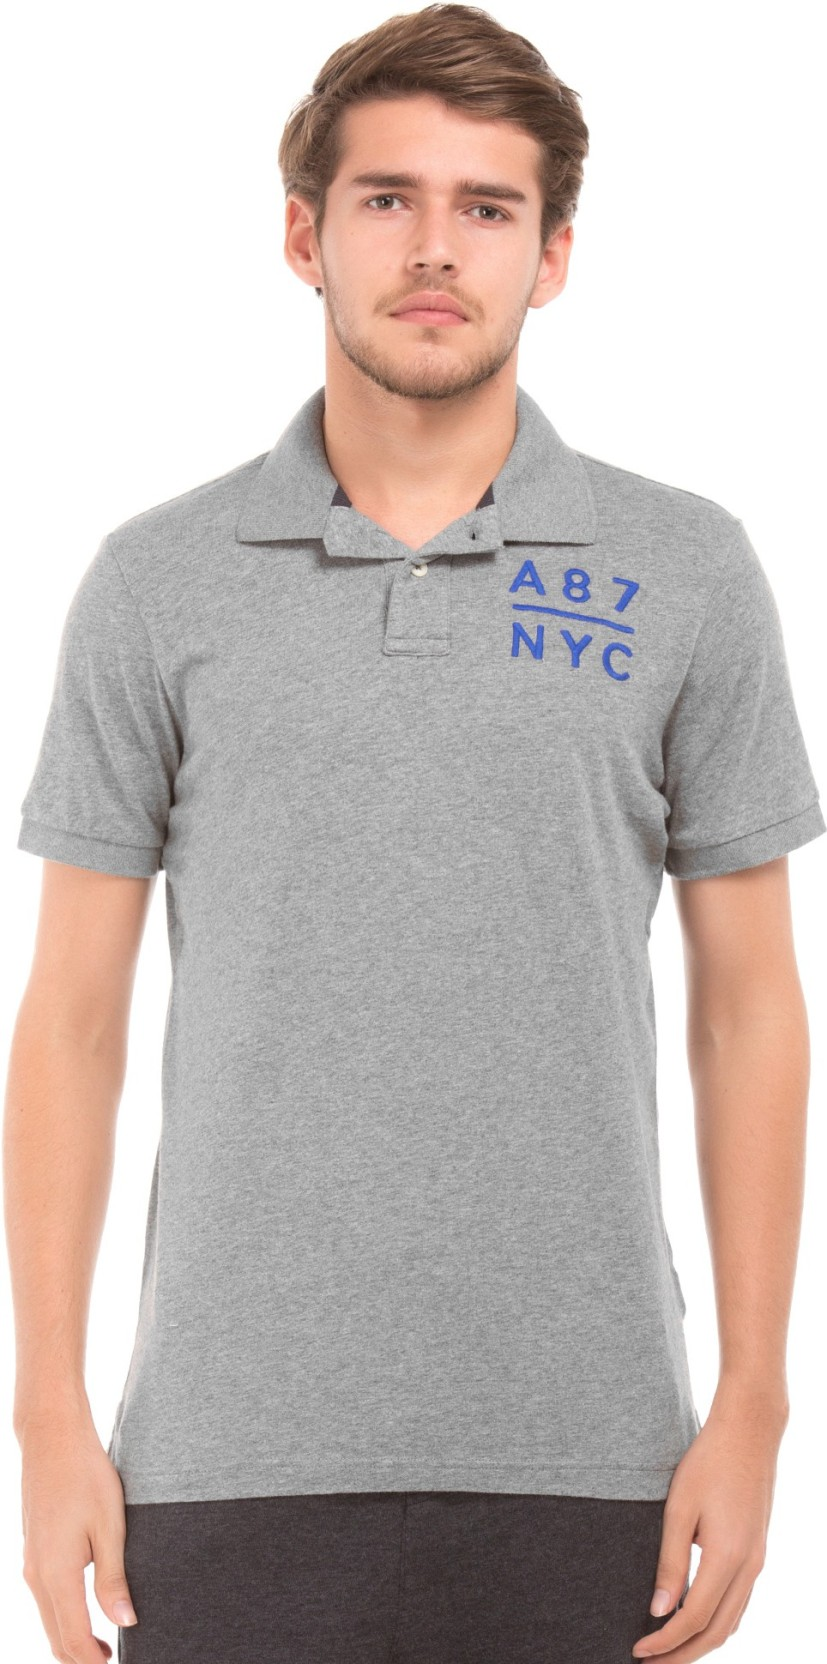 c88531d7 Aeropostale T Shirts Online In India – EDGE Engineering and ...